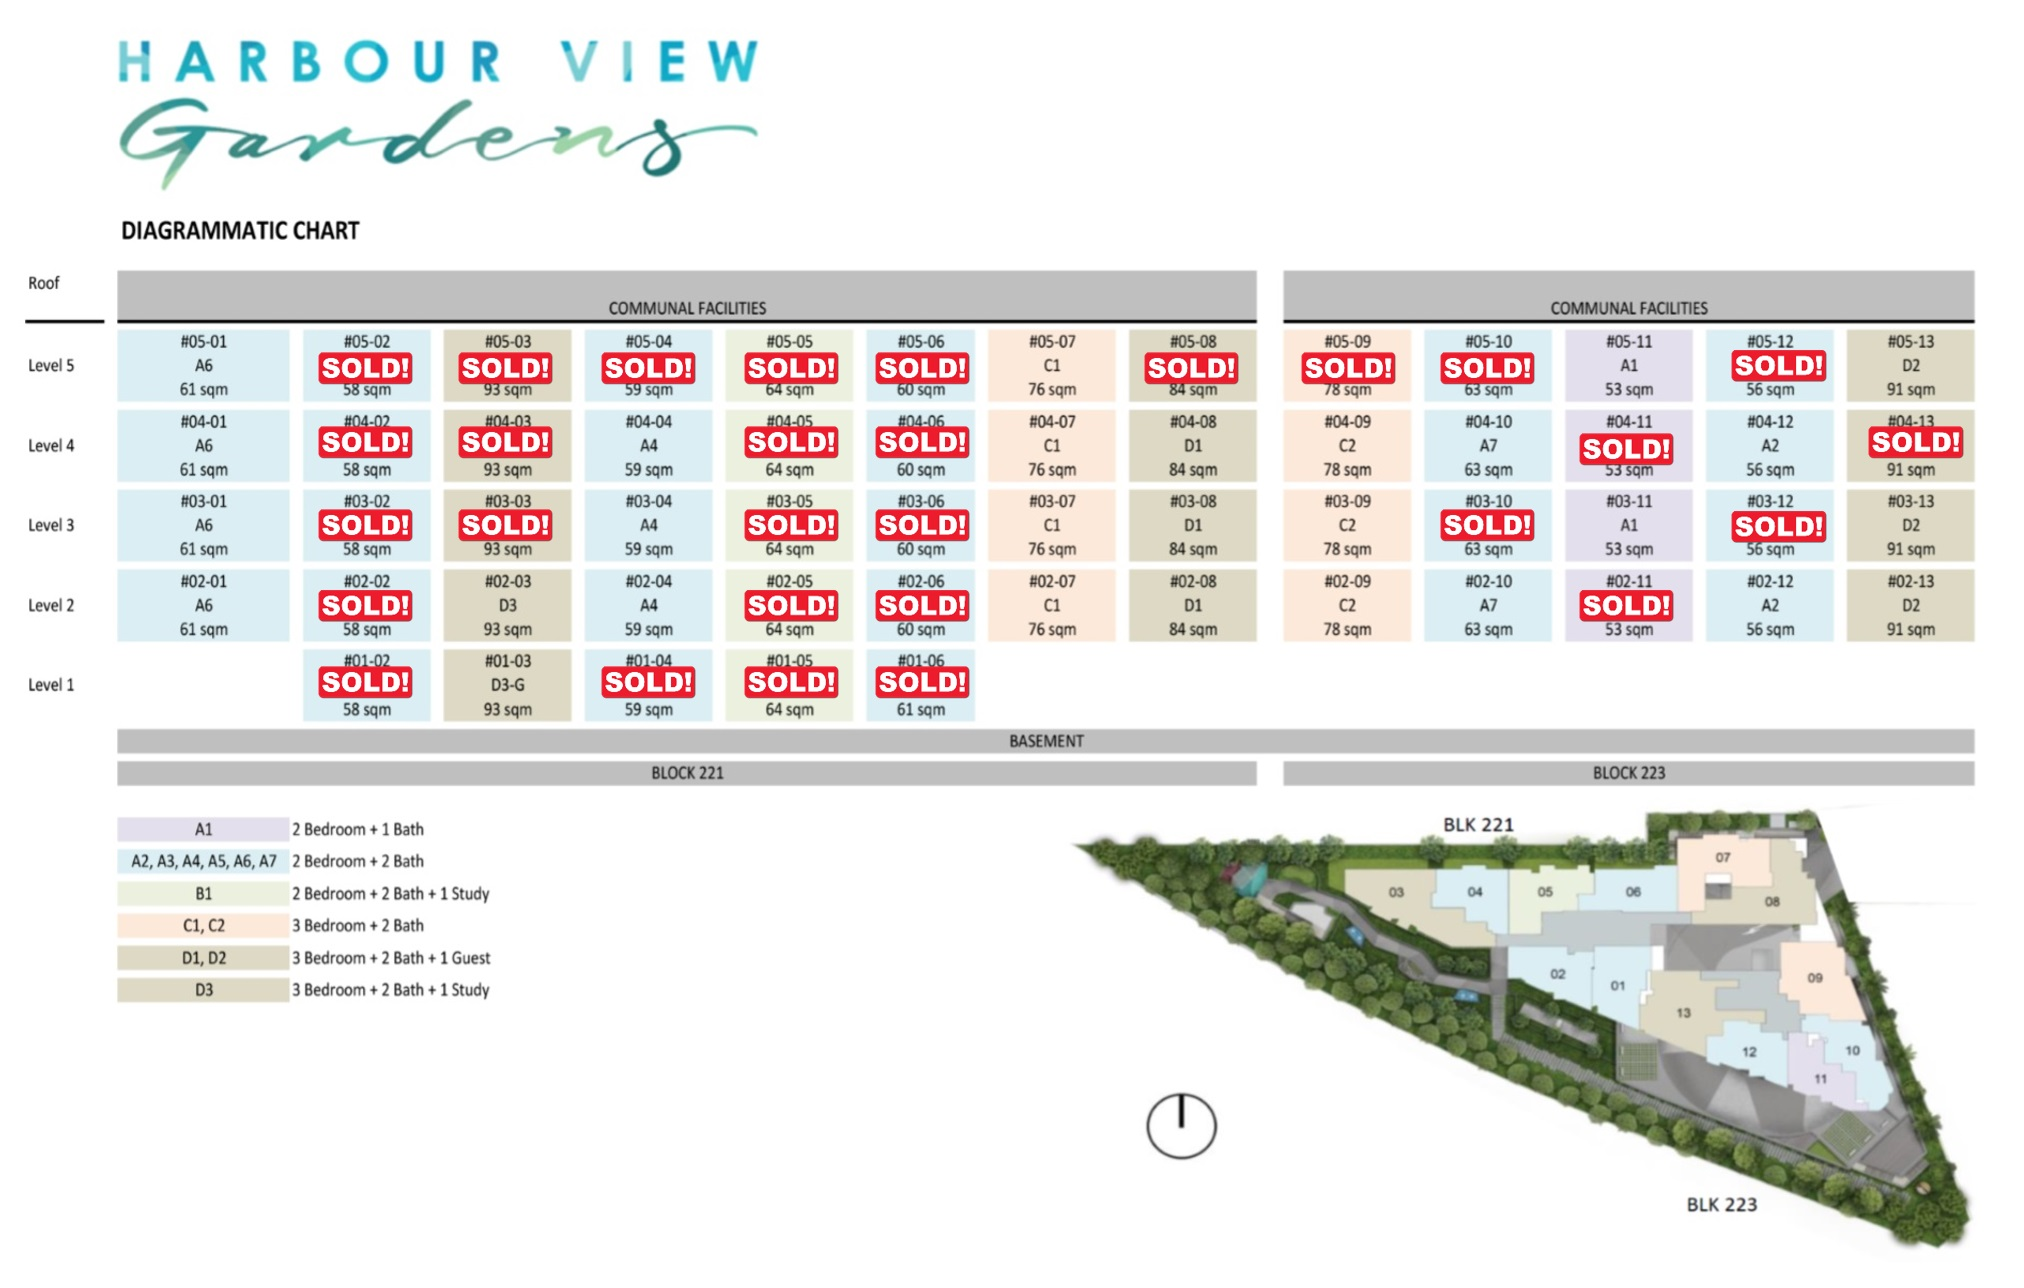 Harbour View Gardens Availability